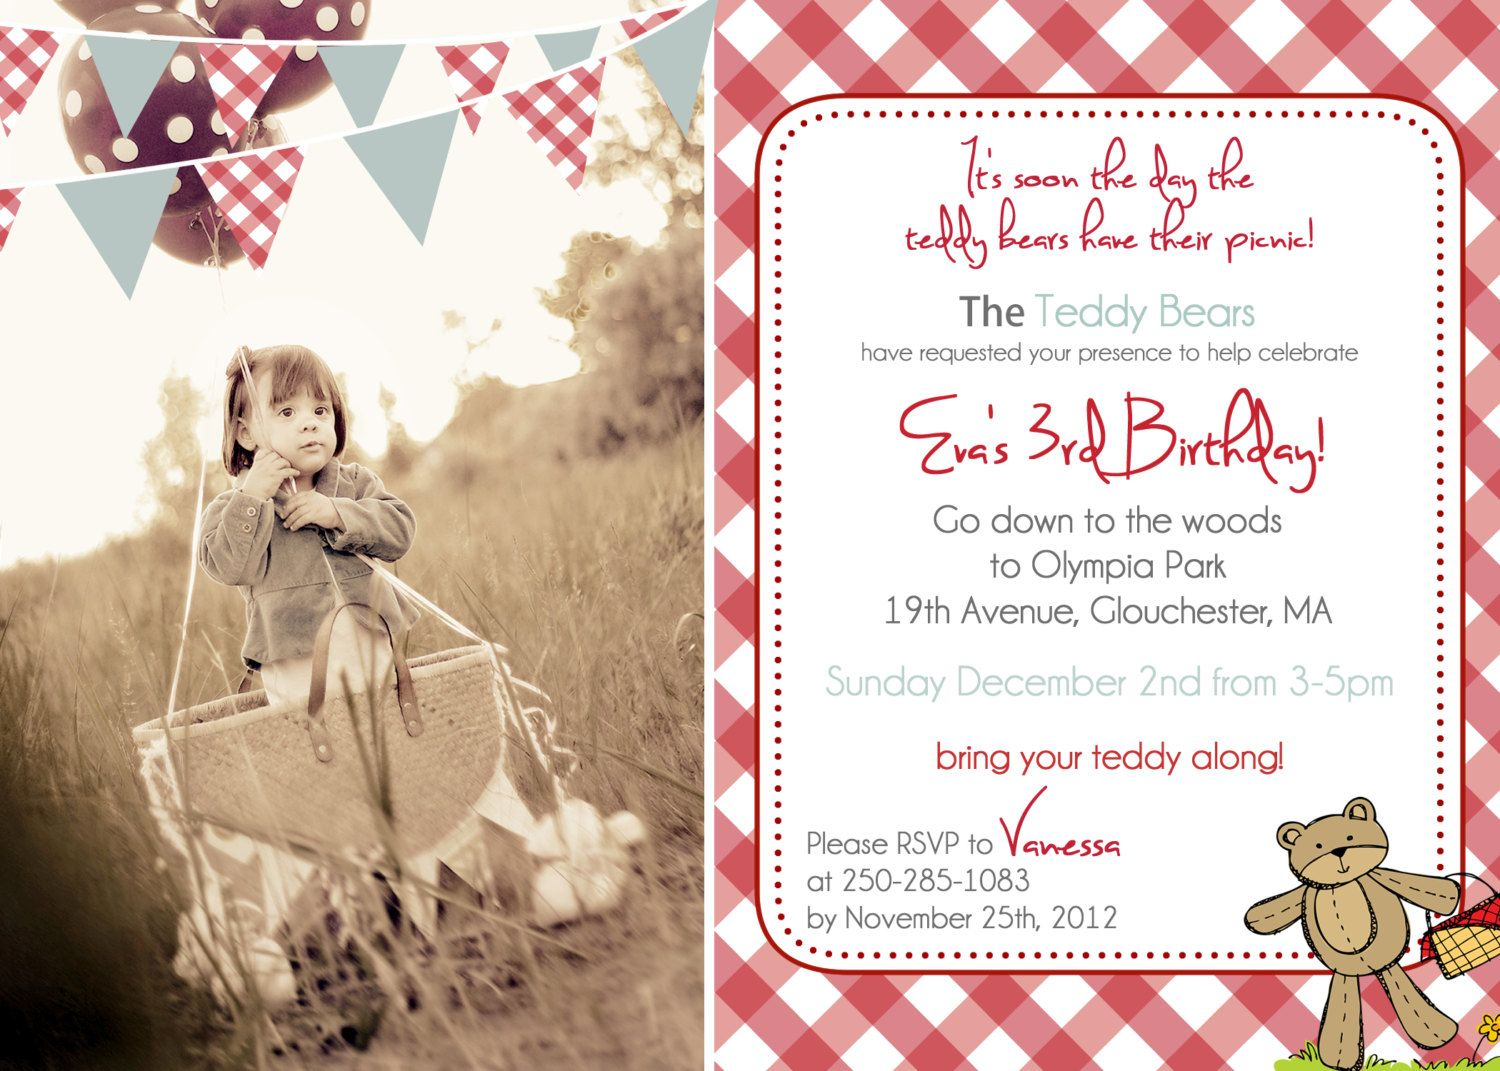 teddy bear picnic invitations template google search fianna s